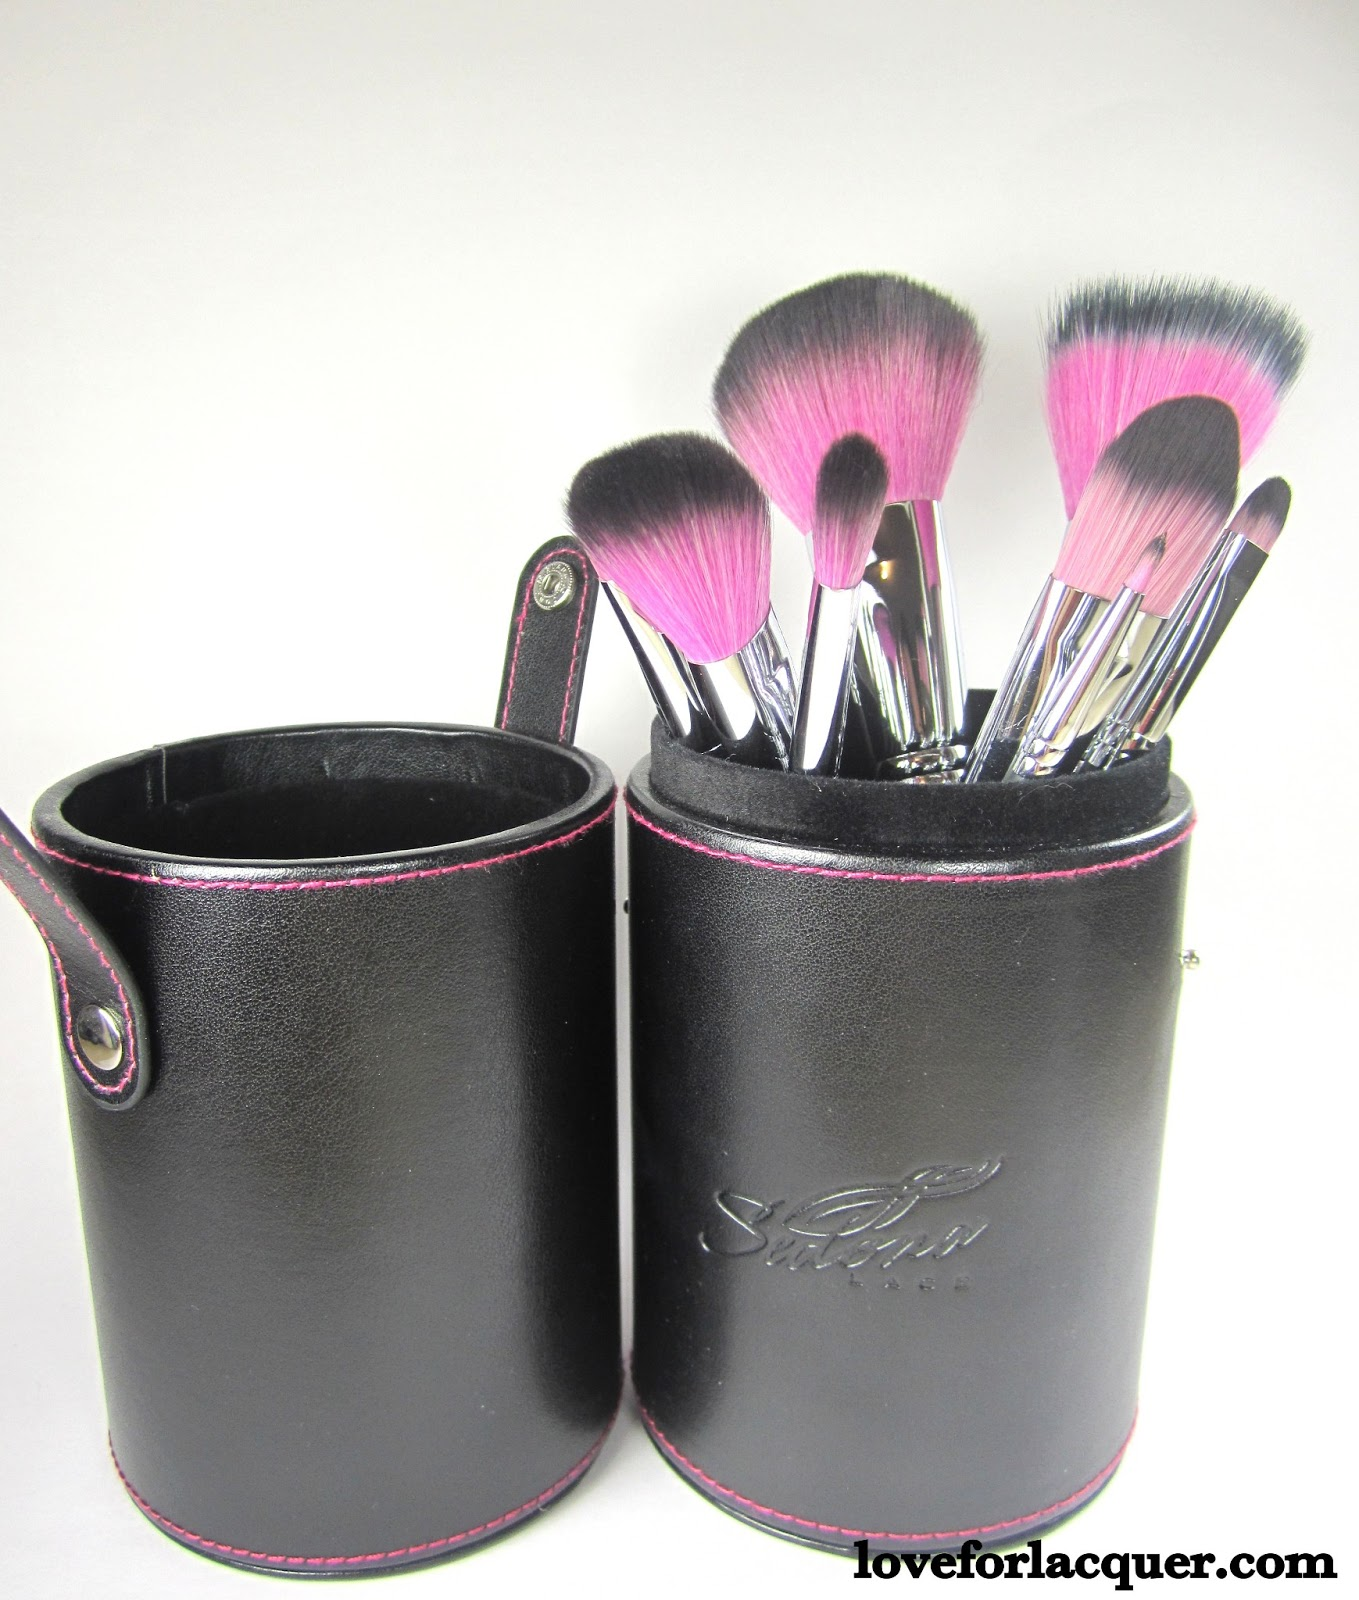 Sedona Lace 12 Piece Synthetic Makeup Brush Review + Discount Code!